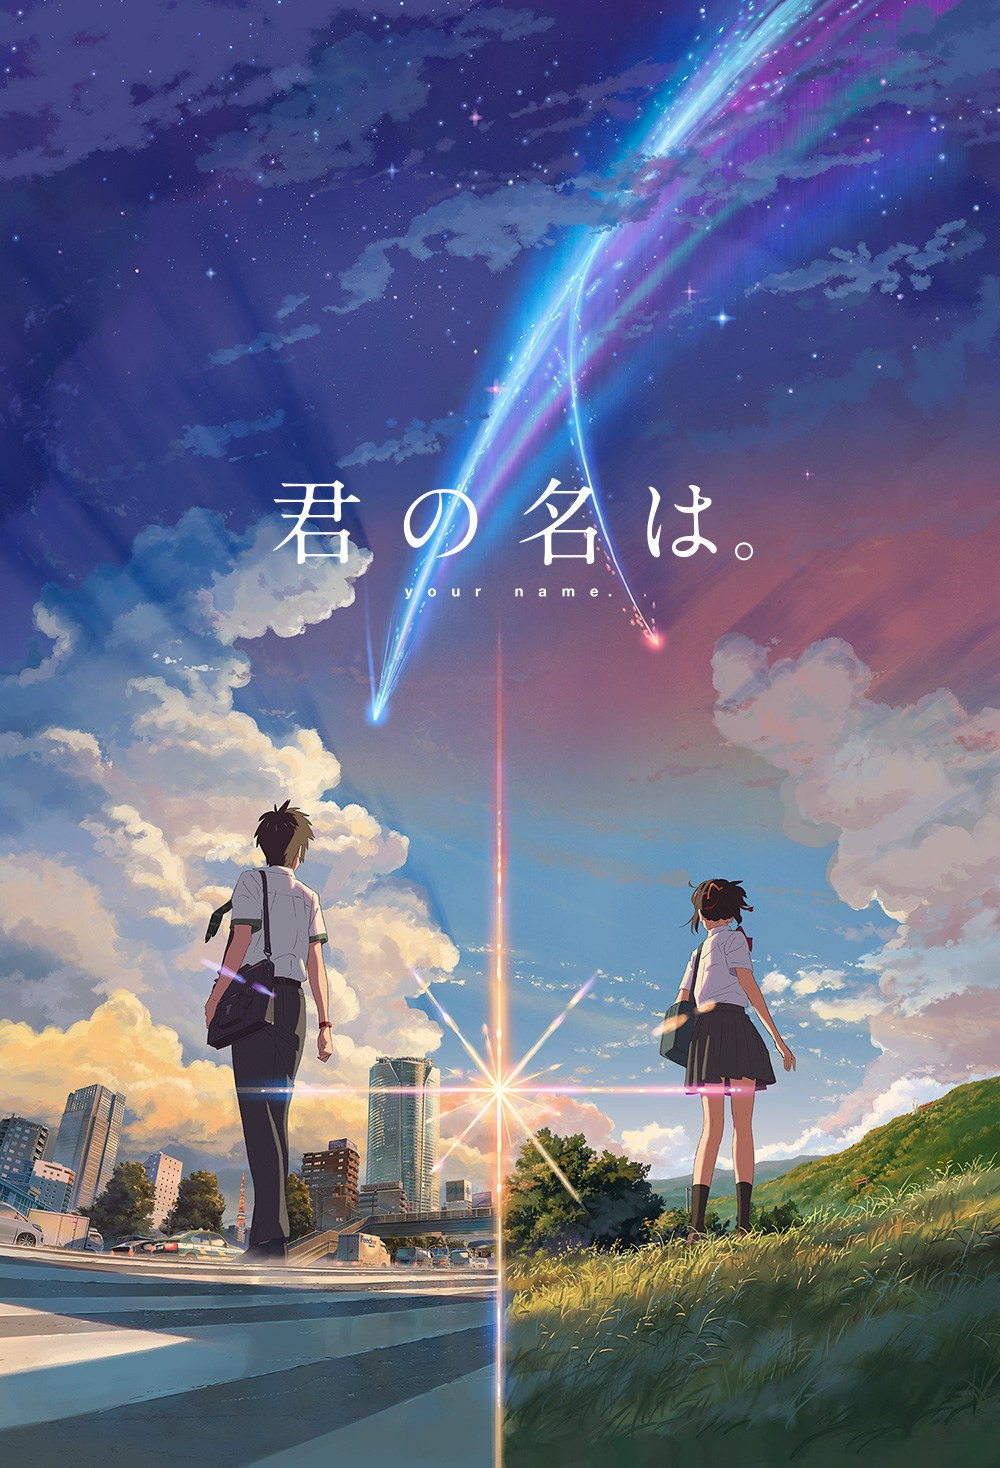 Will the anime movie Your Name (Kimi no Na wa) get a